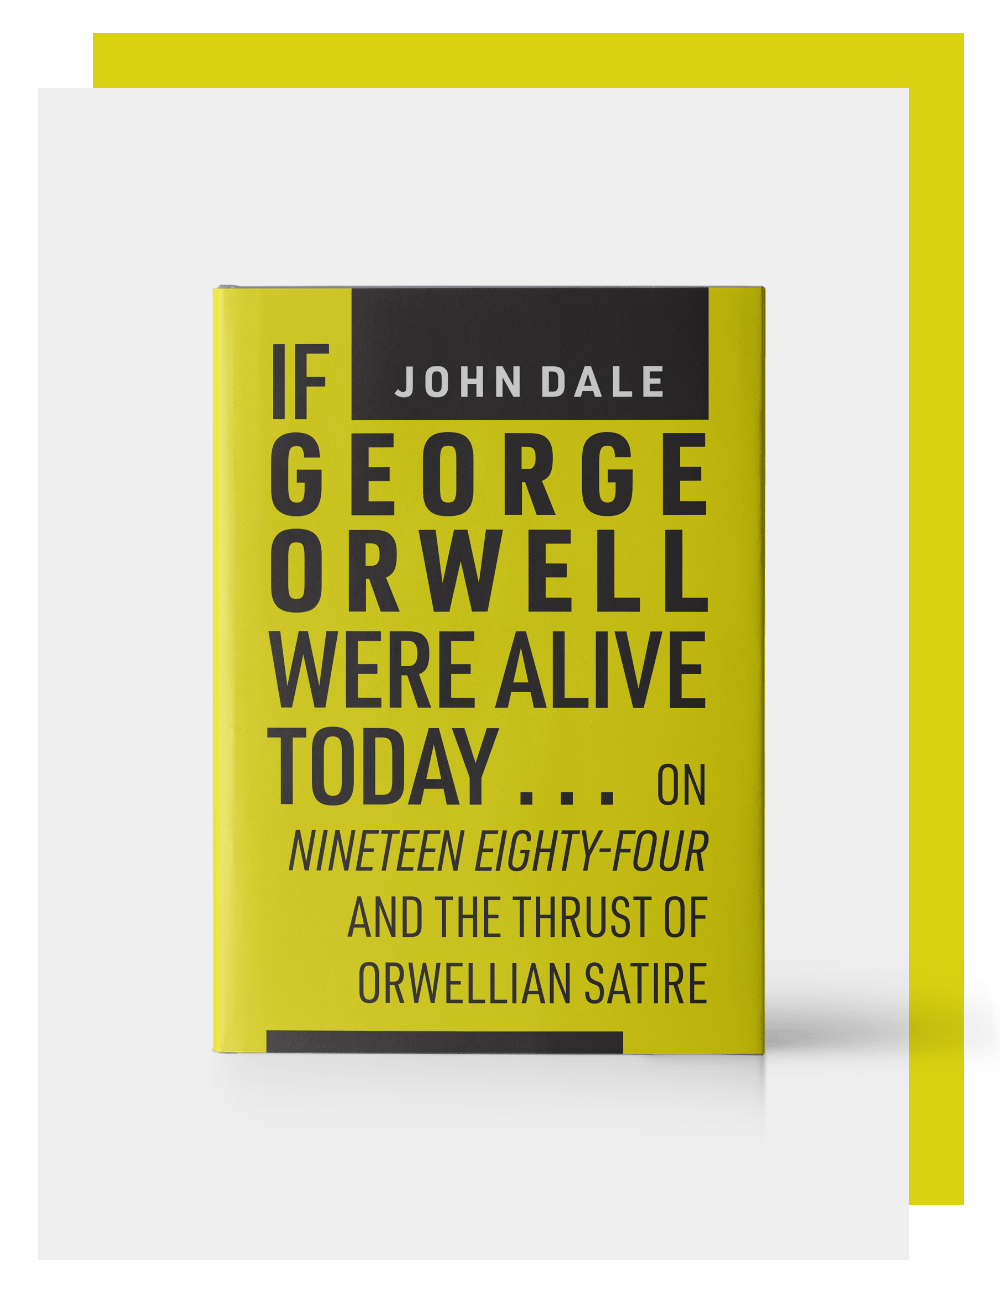 John Dale, If George Orwell were alive today